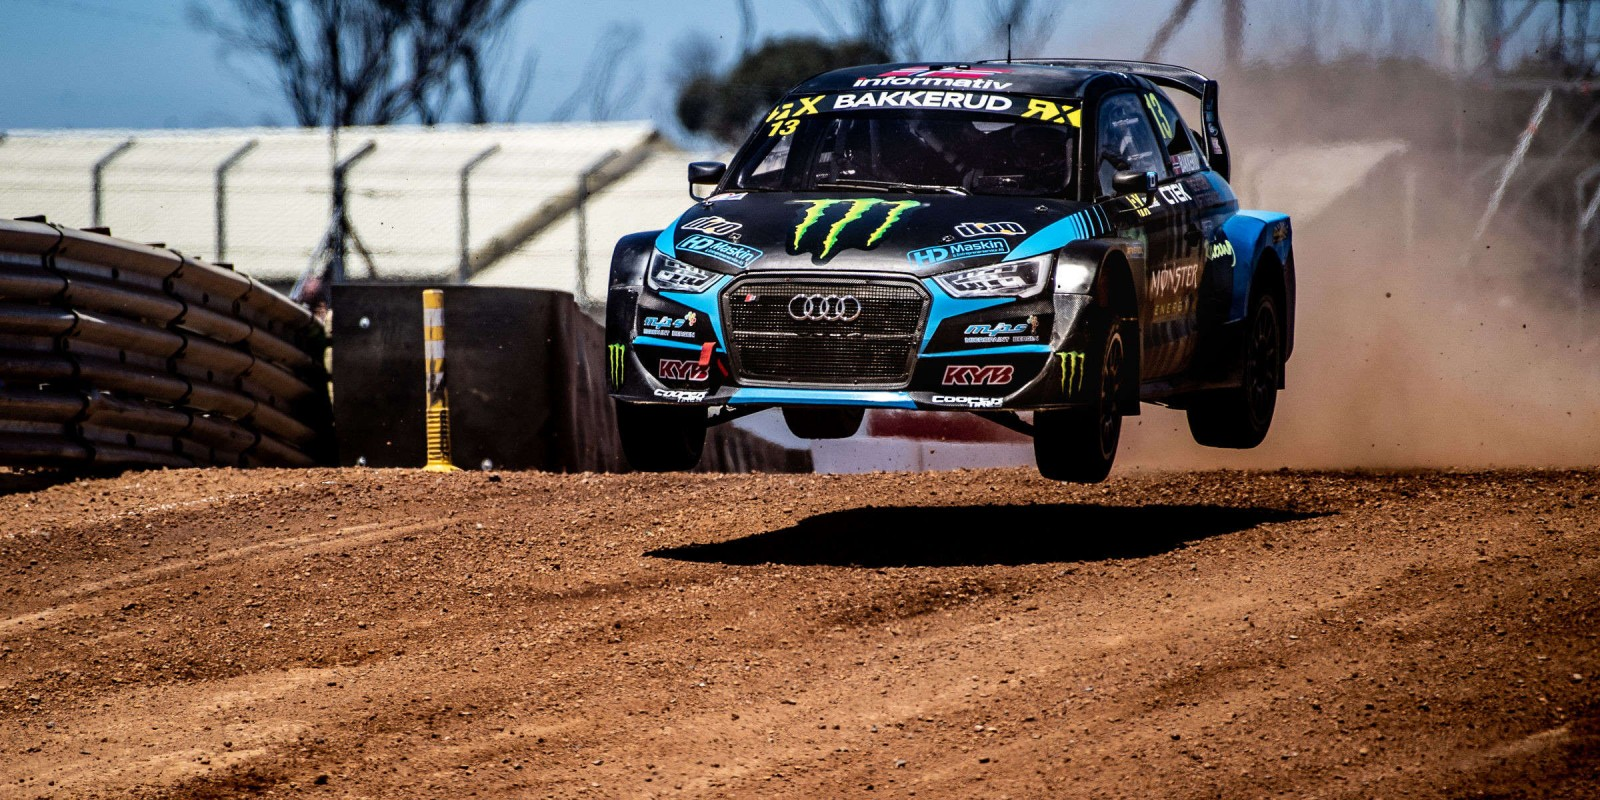 Images from the 2019 World RX of South Africa